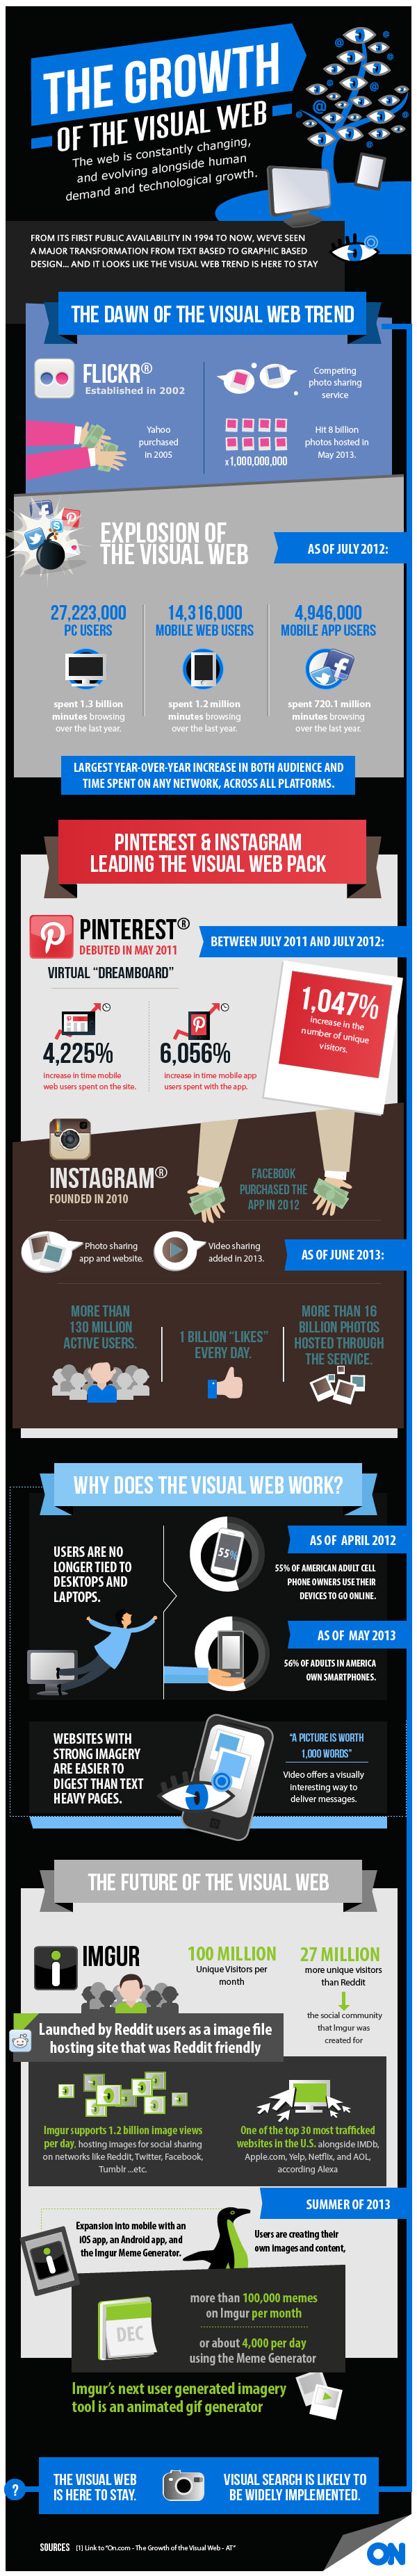 On.com-The-Growth-Of-The-Visual-Web